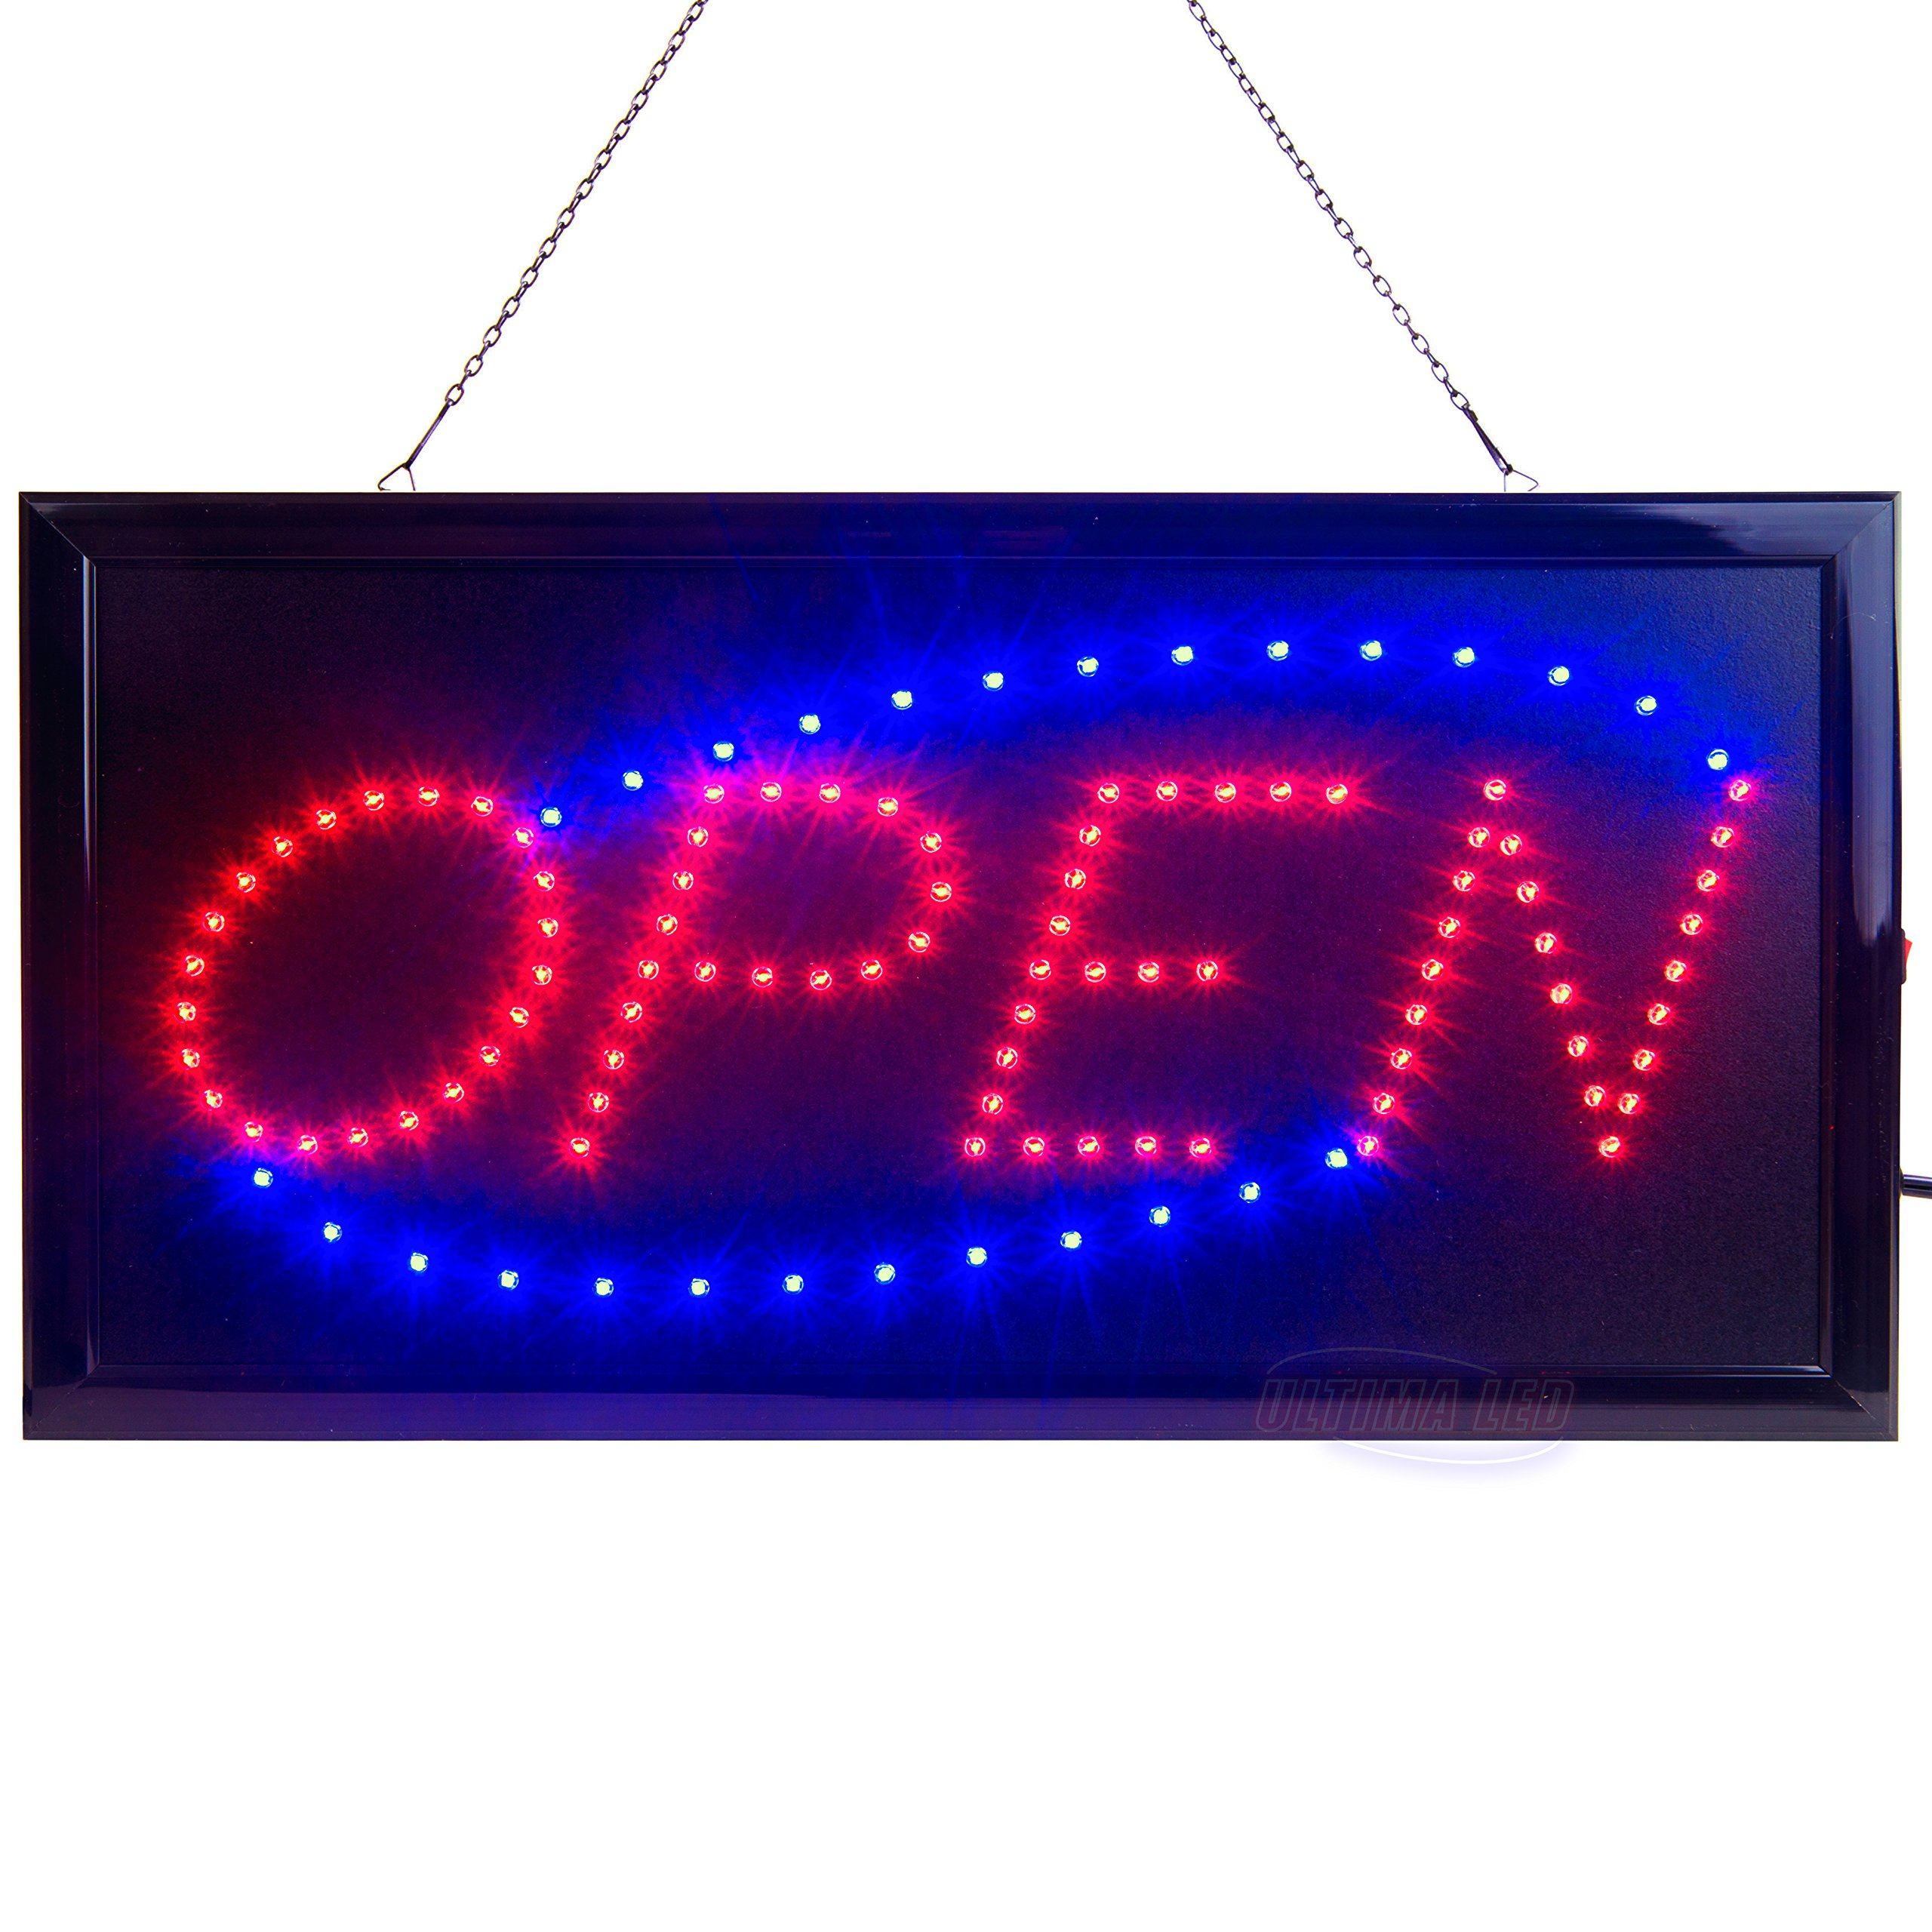 LED Open Sign for Business Displays: Electric Light up Sign Open with 2 Flashing Modes   Lighted Signs for Shops, Hotels, Liquor Stores   No use of Toxic Neon (19'' x 10'', Model 2)